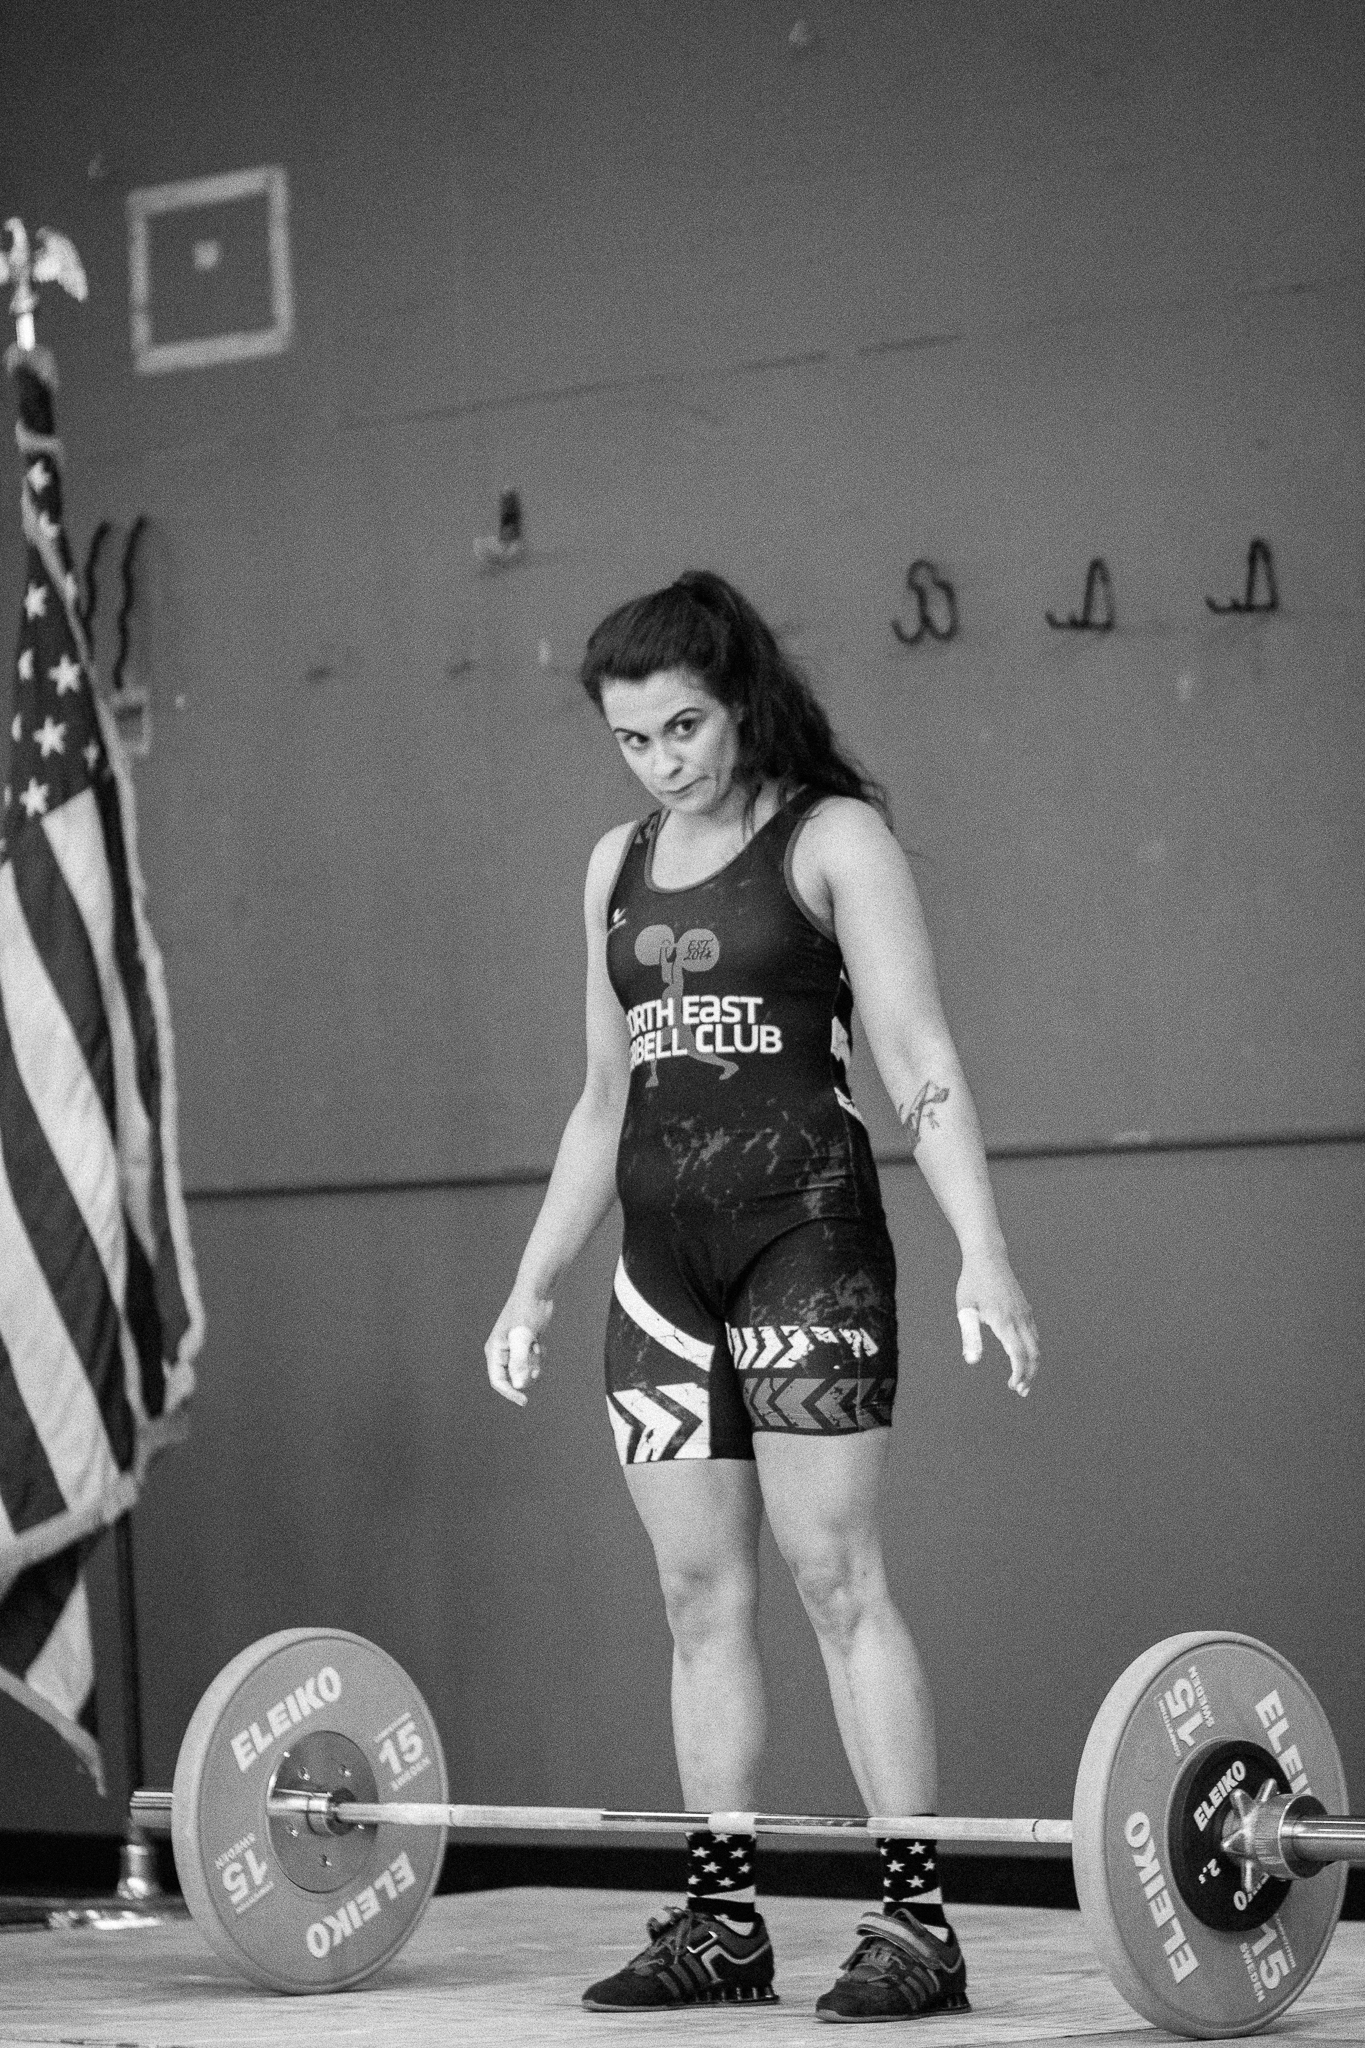 sesley-omli-female-weightlifter-good-form-clean-jerk-snatch-vp (1 of 6).jpg